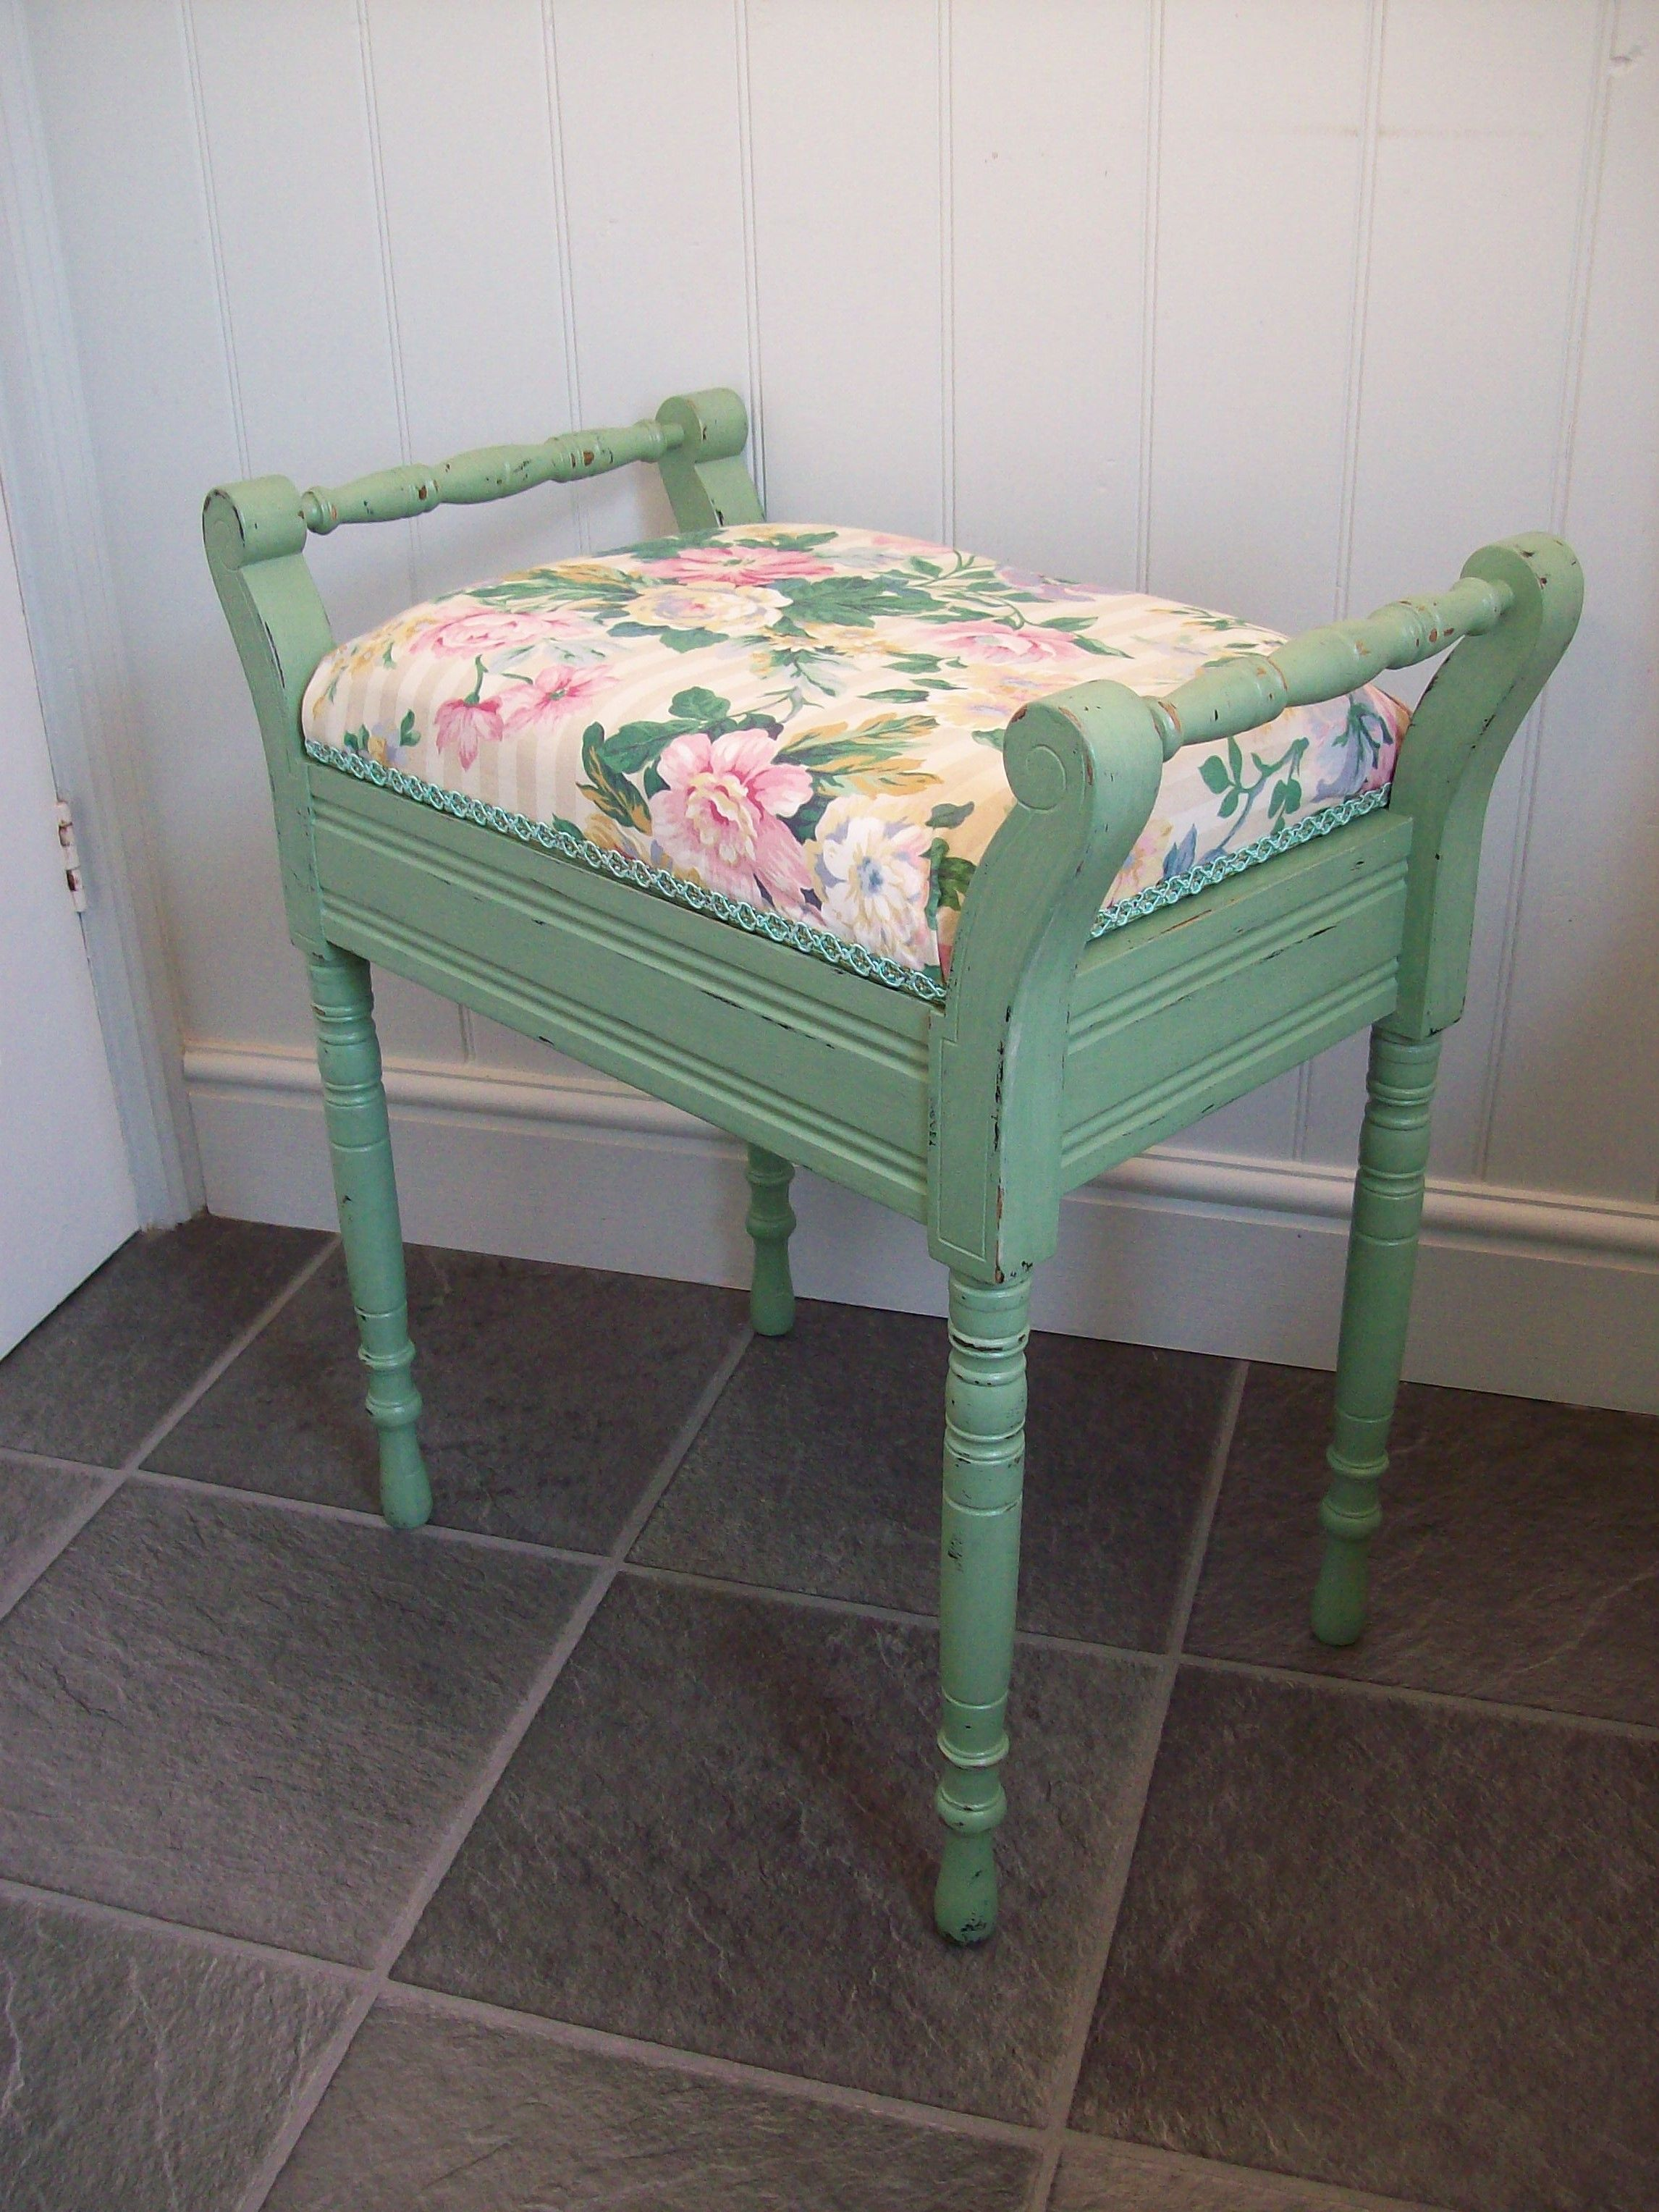 Rescued Piano Stool Re Painted In Shabby Chic Green And Re Covered In Vintage Ros Shabby Chic Furniture Painting French Chic Furniture Shabby Chic Furniture